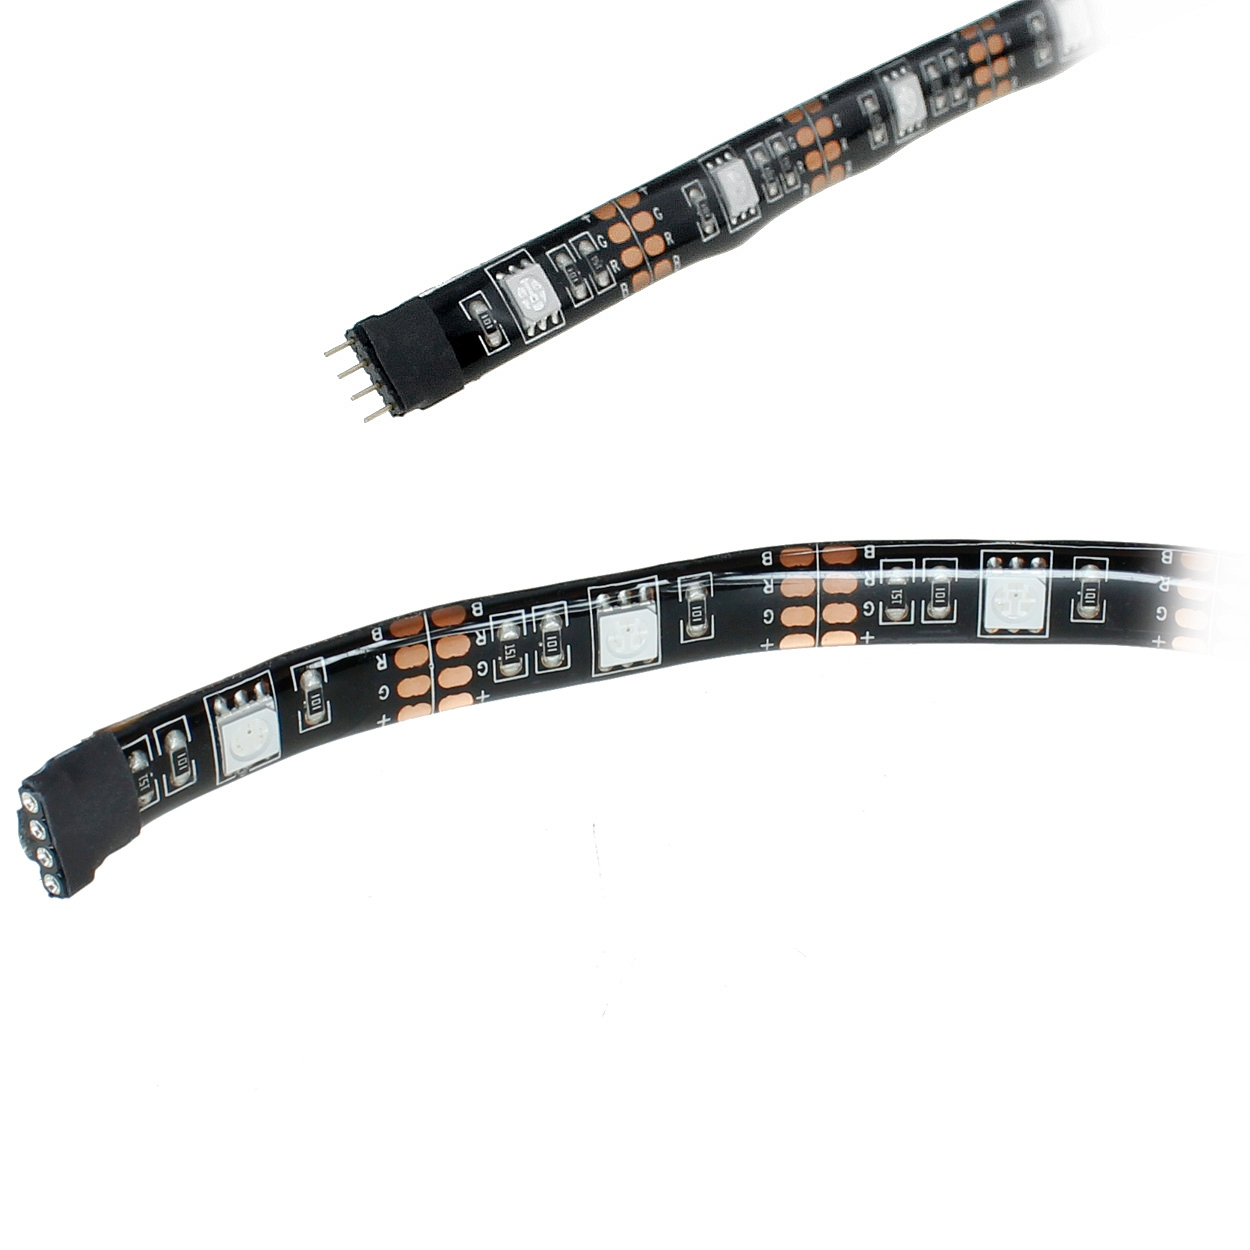 10ft RGB Color LED Light Strip 4-Pin Male to Female Extension, 5V USB, Waterproof IP65